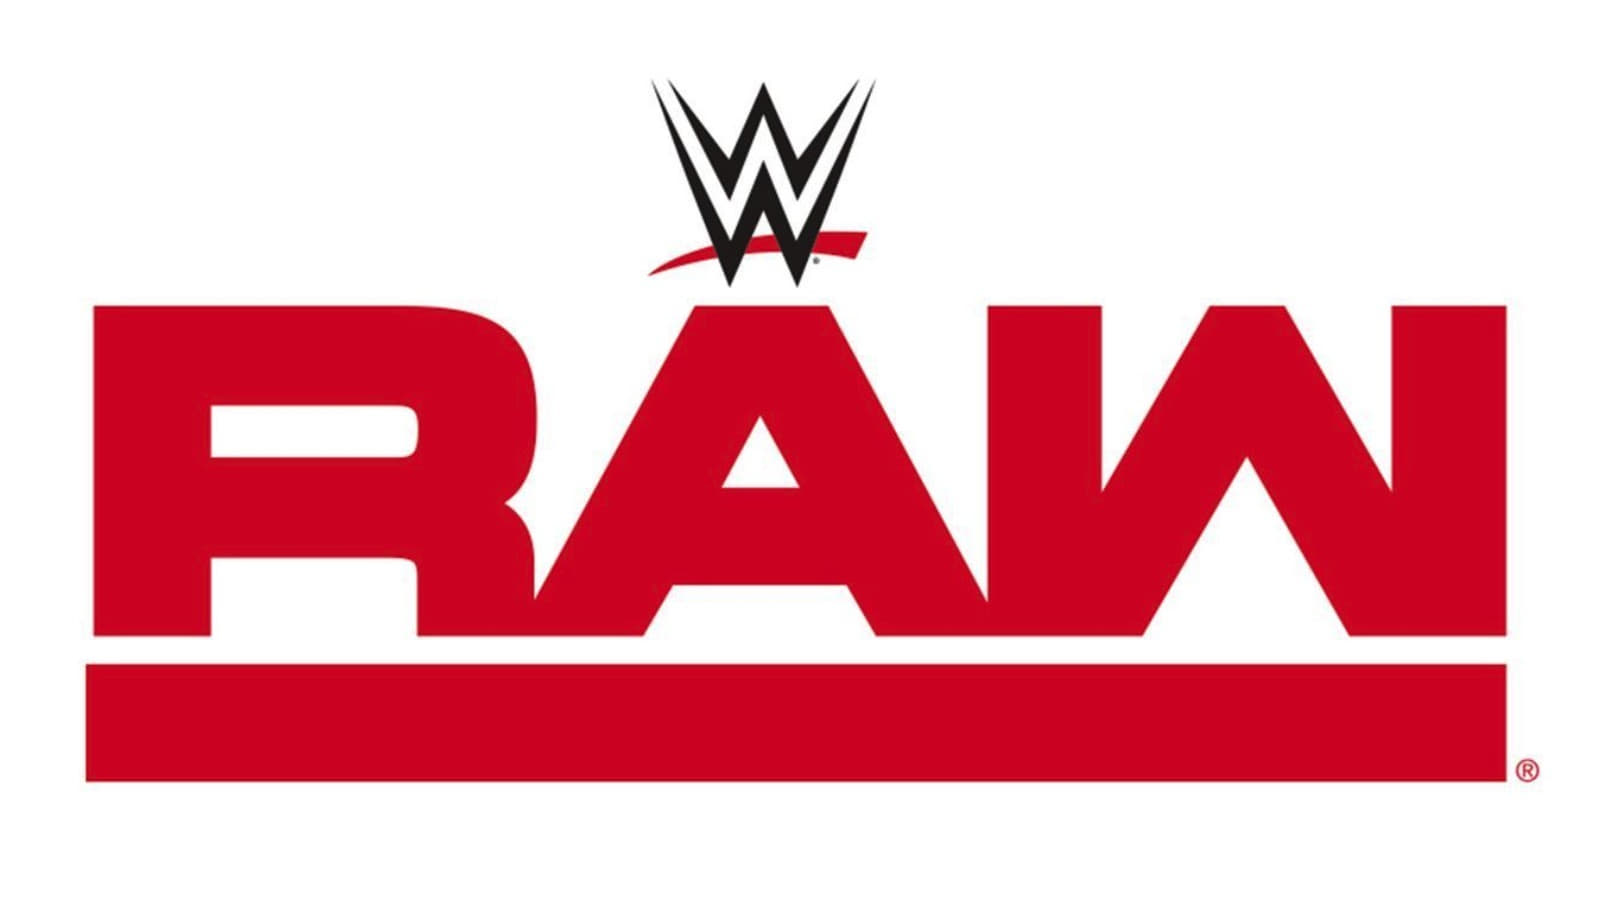 WWE Raw - Season 9 Episode 19 : RAW is WAR 415